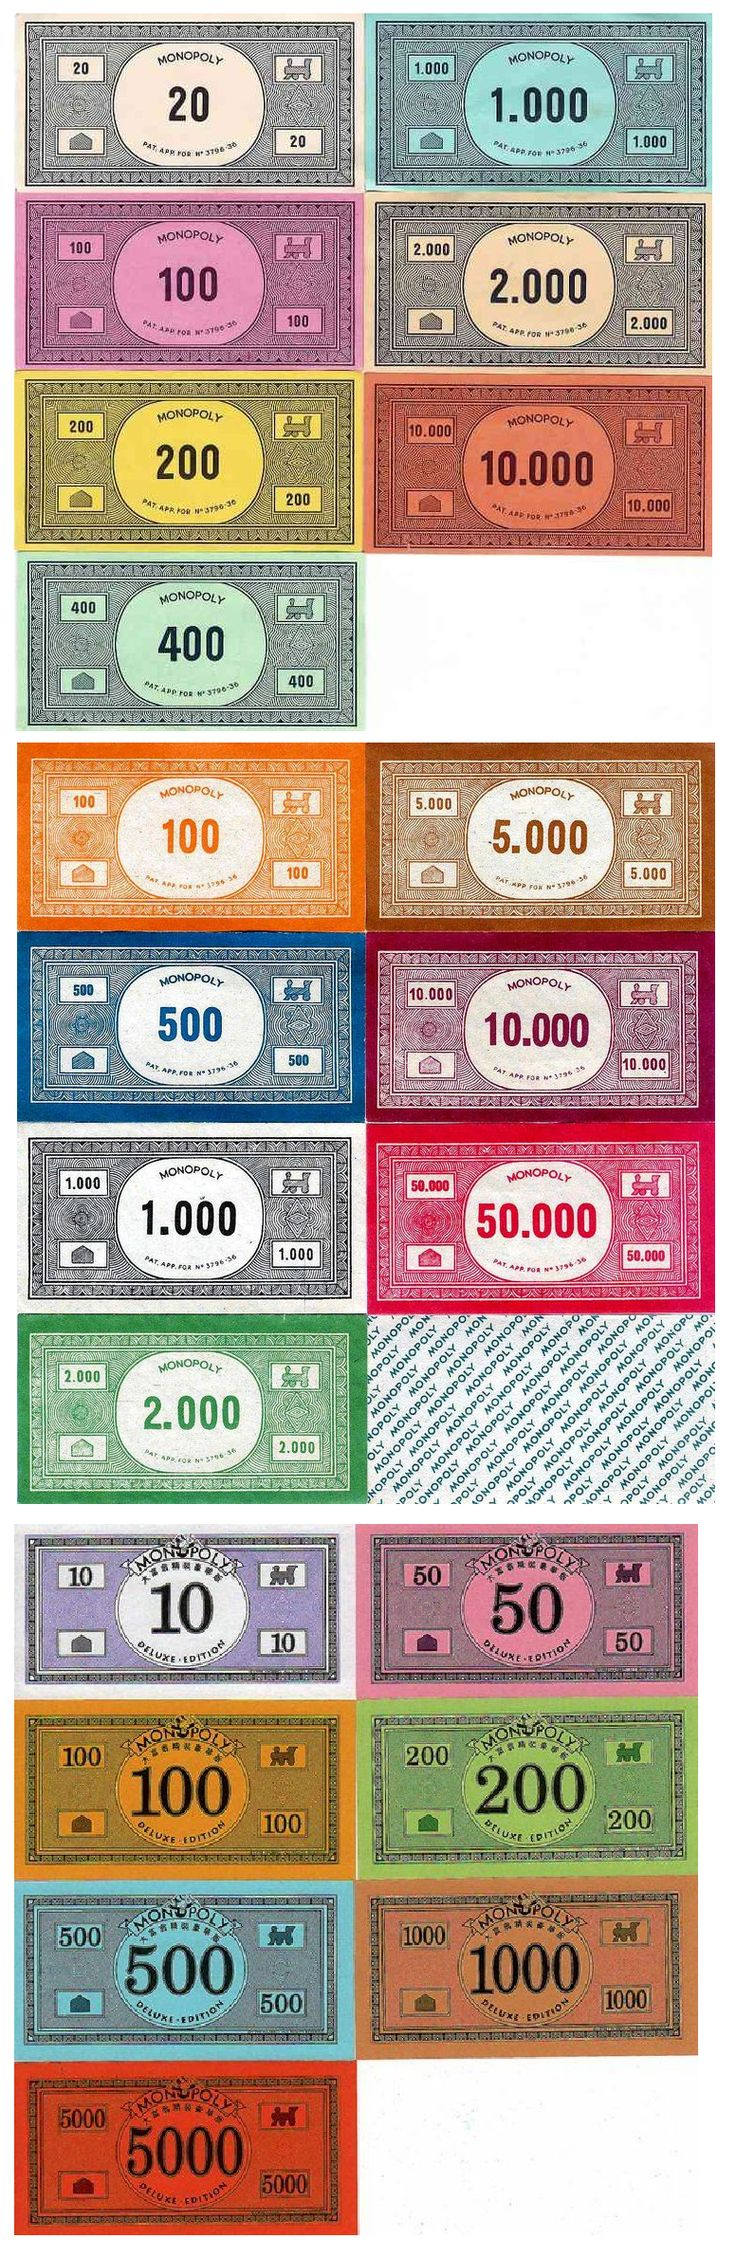 Best 25 monopoly ideas on pinterest harry potter for Monopoly money templates